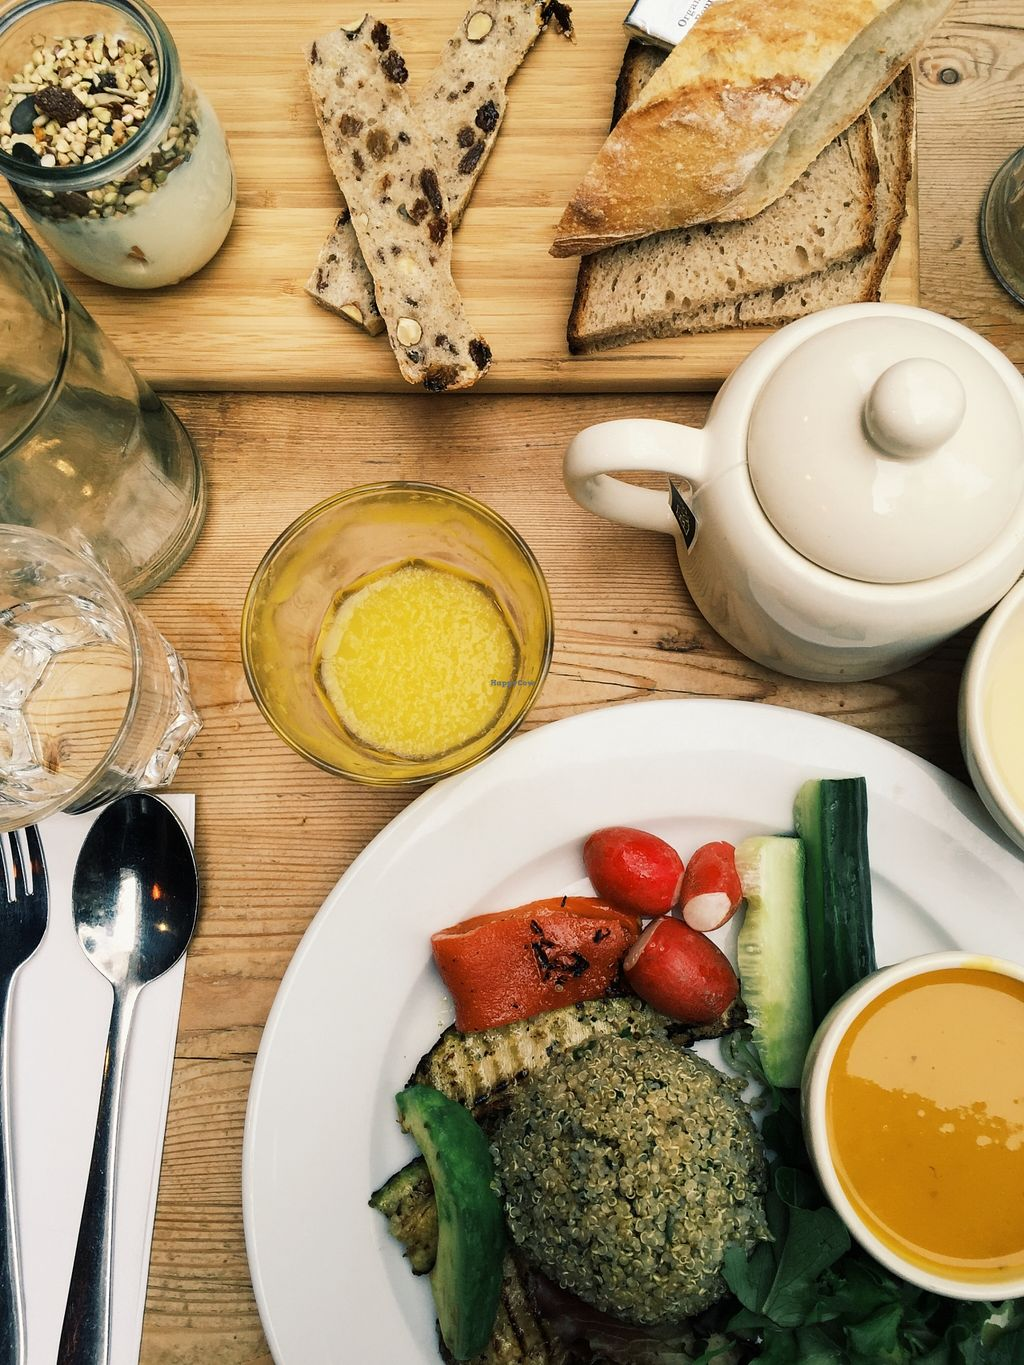 """Photo of Le Pain Quotidien - St. Honore  by <a href=""""/members/profile/Nikoleta"""">Nikoleta</a> <br/>Best vegan brunch! INSTAGRAM: nikita___green  <br/> November 24, 2015  - <a href='/contact/abuse/image/34646/126074'>Report</a>"""